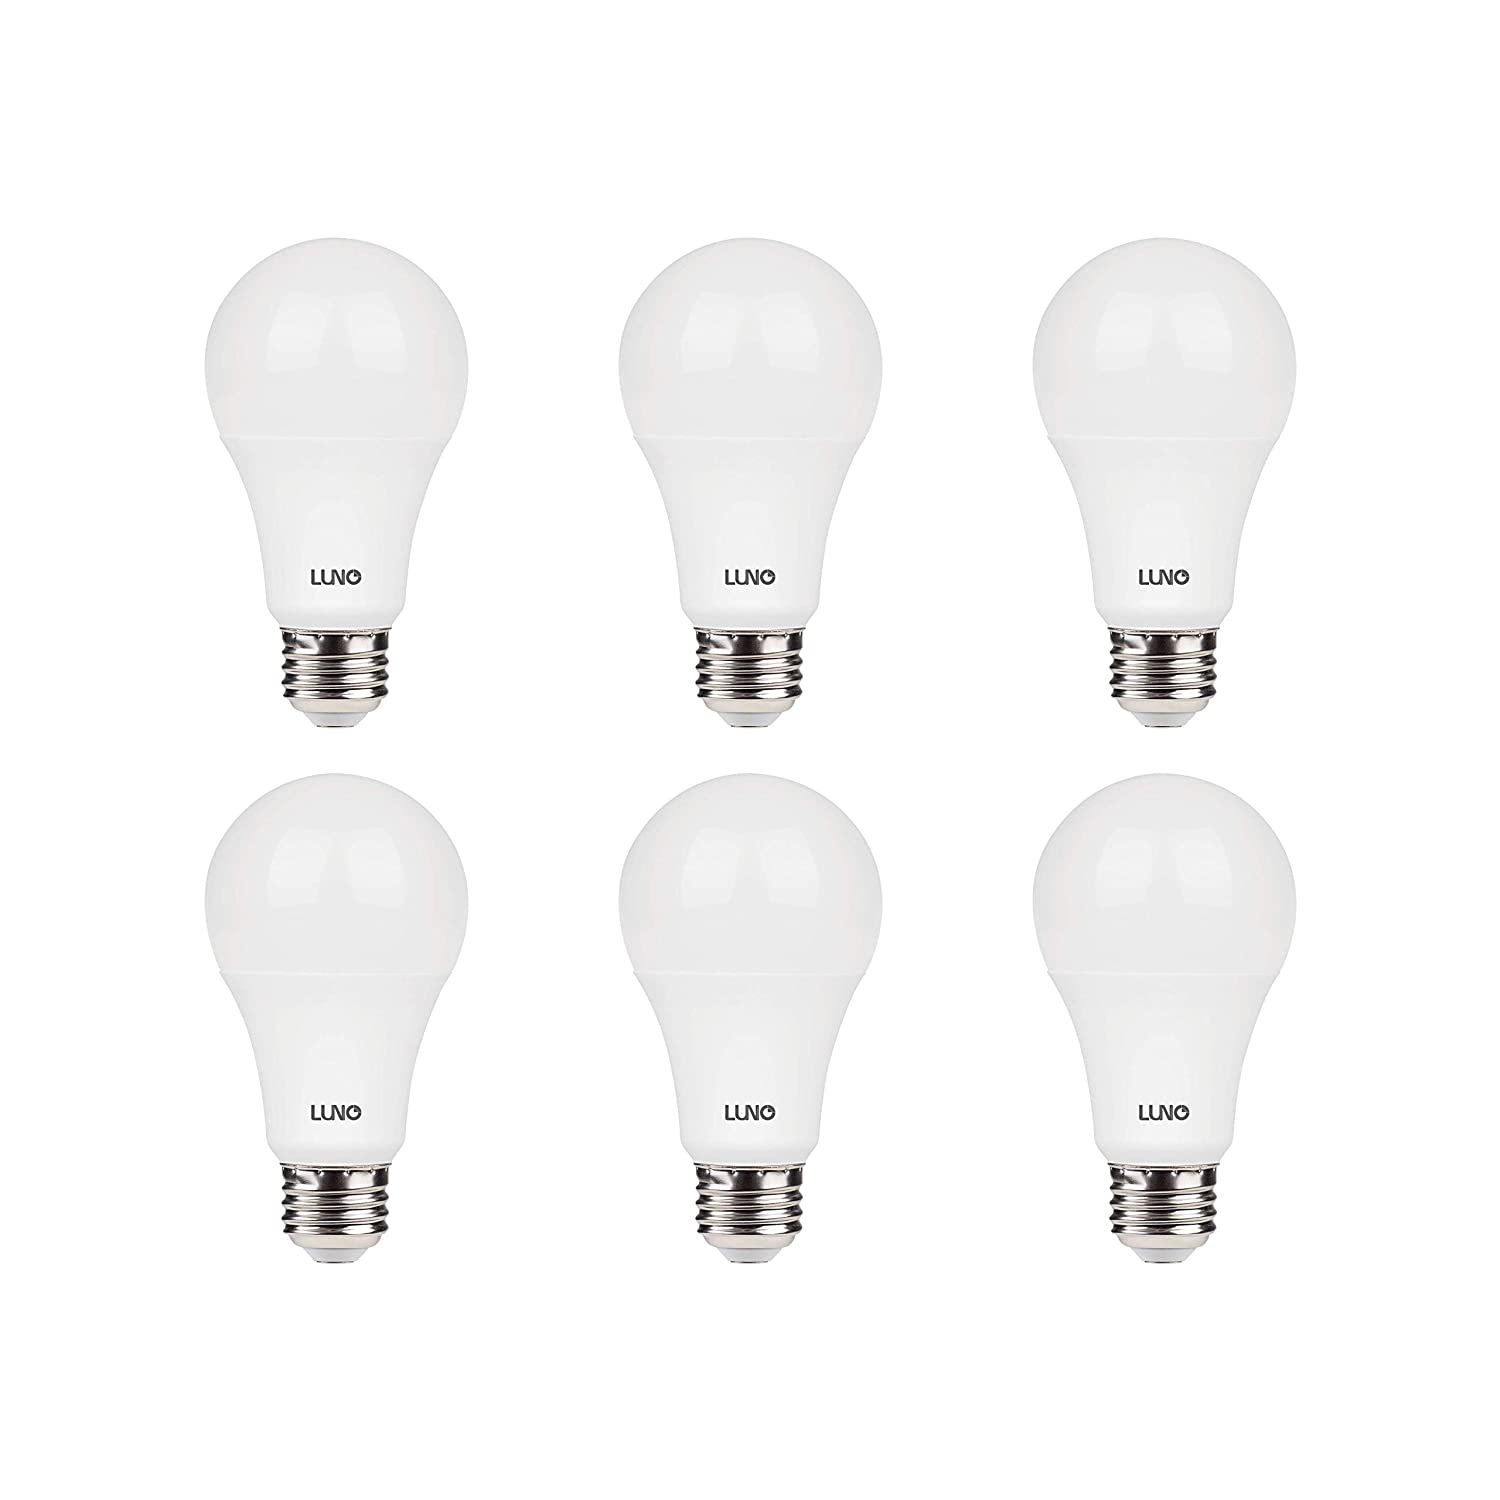 LUNO A19 Dimmable LED Bulb, 11W (75W Equivalent), 1100 Lumens, 2700K (Soft White), Medium Base (E26),UL & Energy Star (6-Pack)